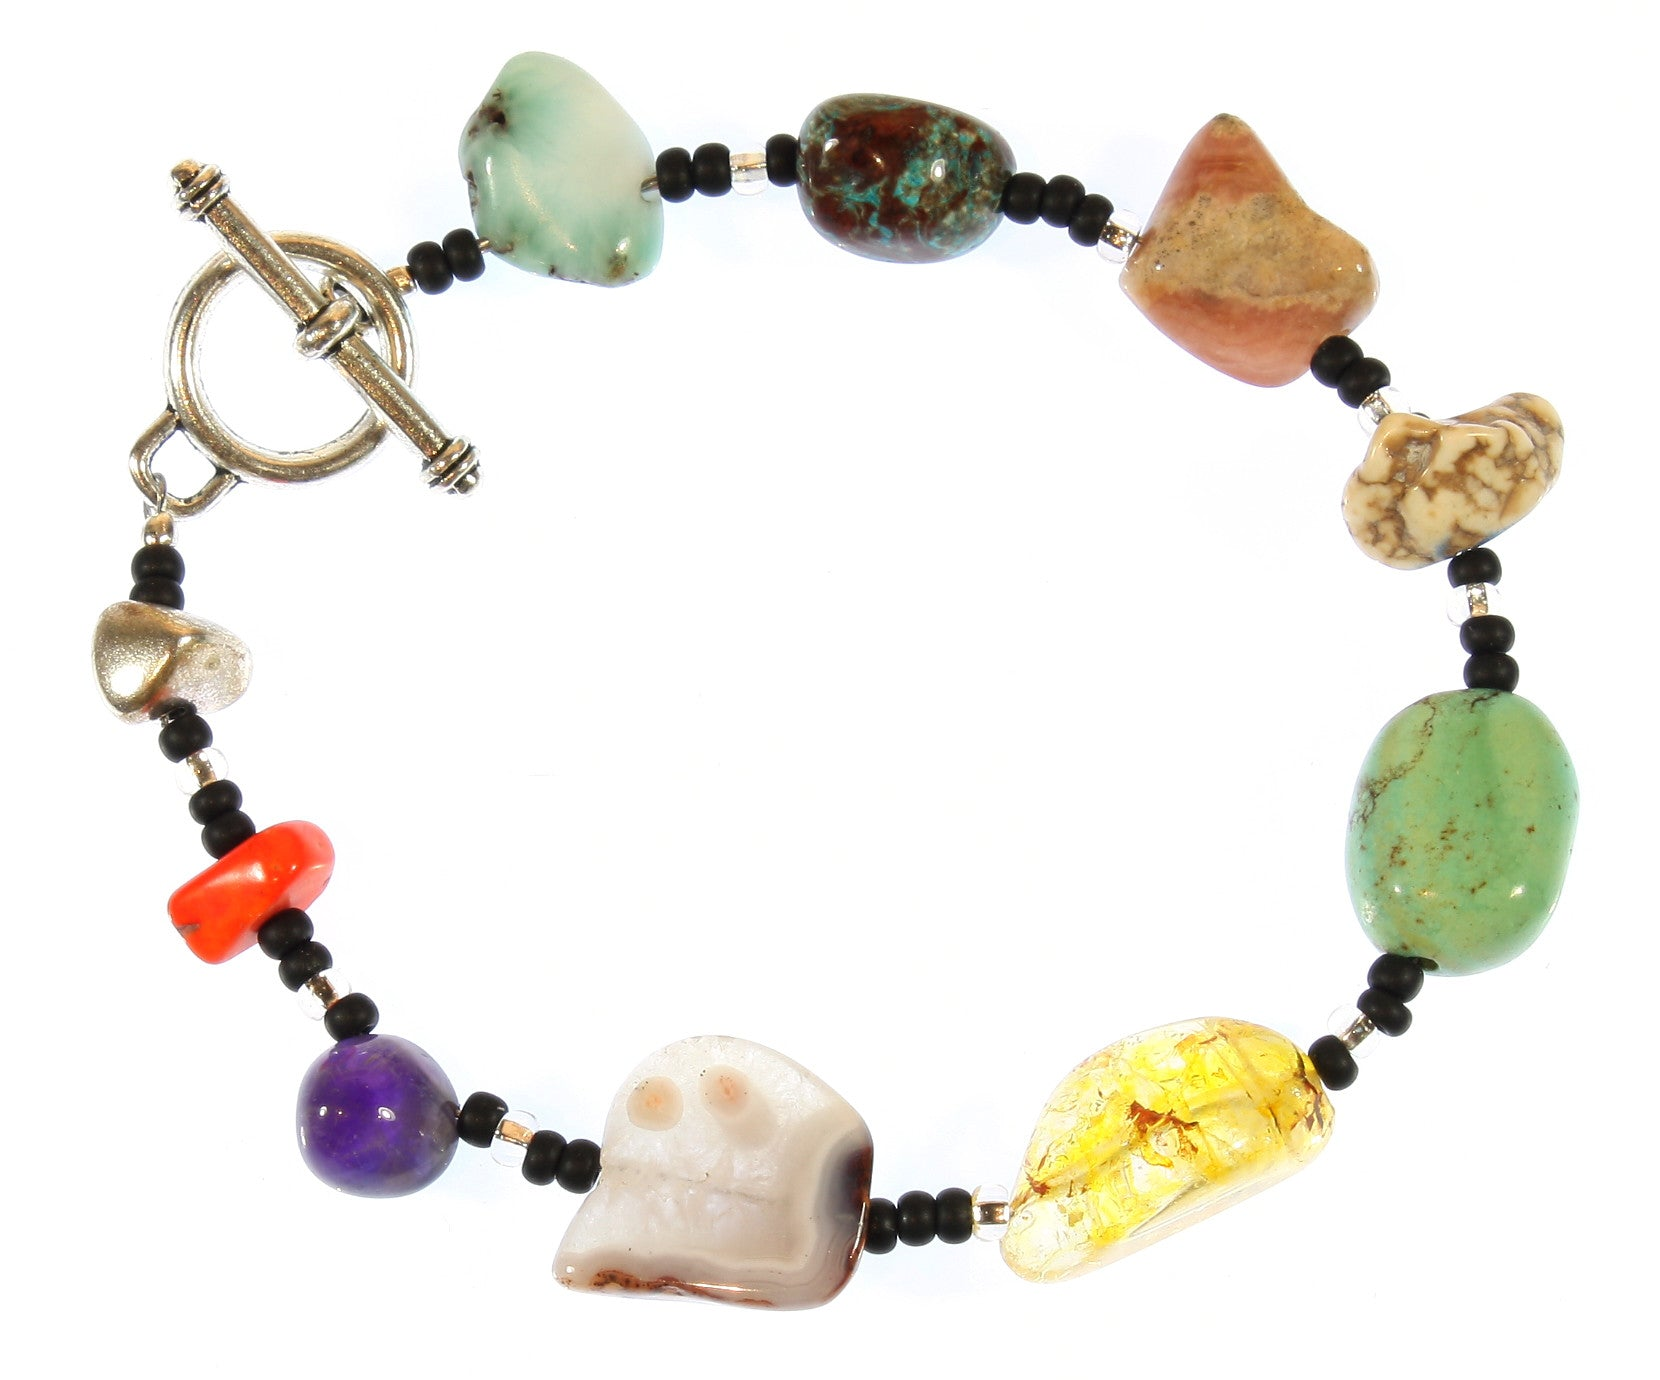 """Hurtling Through Space"" a Bracelet of the Asteroid Belt, Natural Mineral Nuggets, 7.5 Inches"